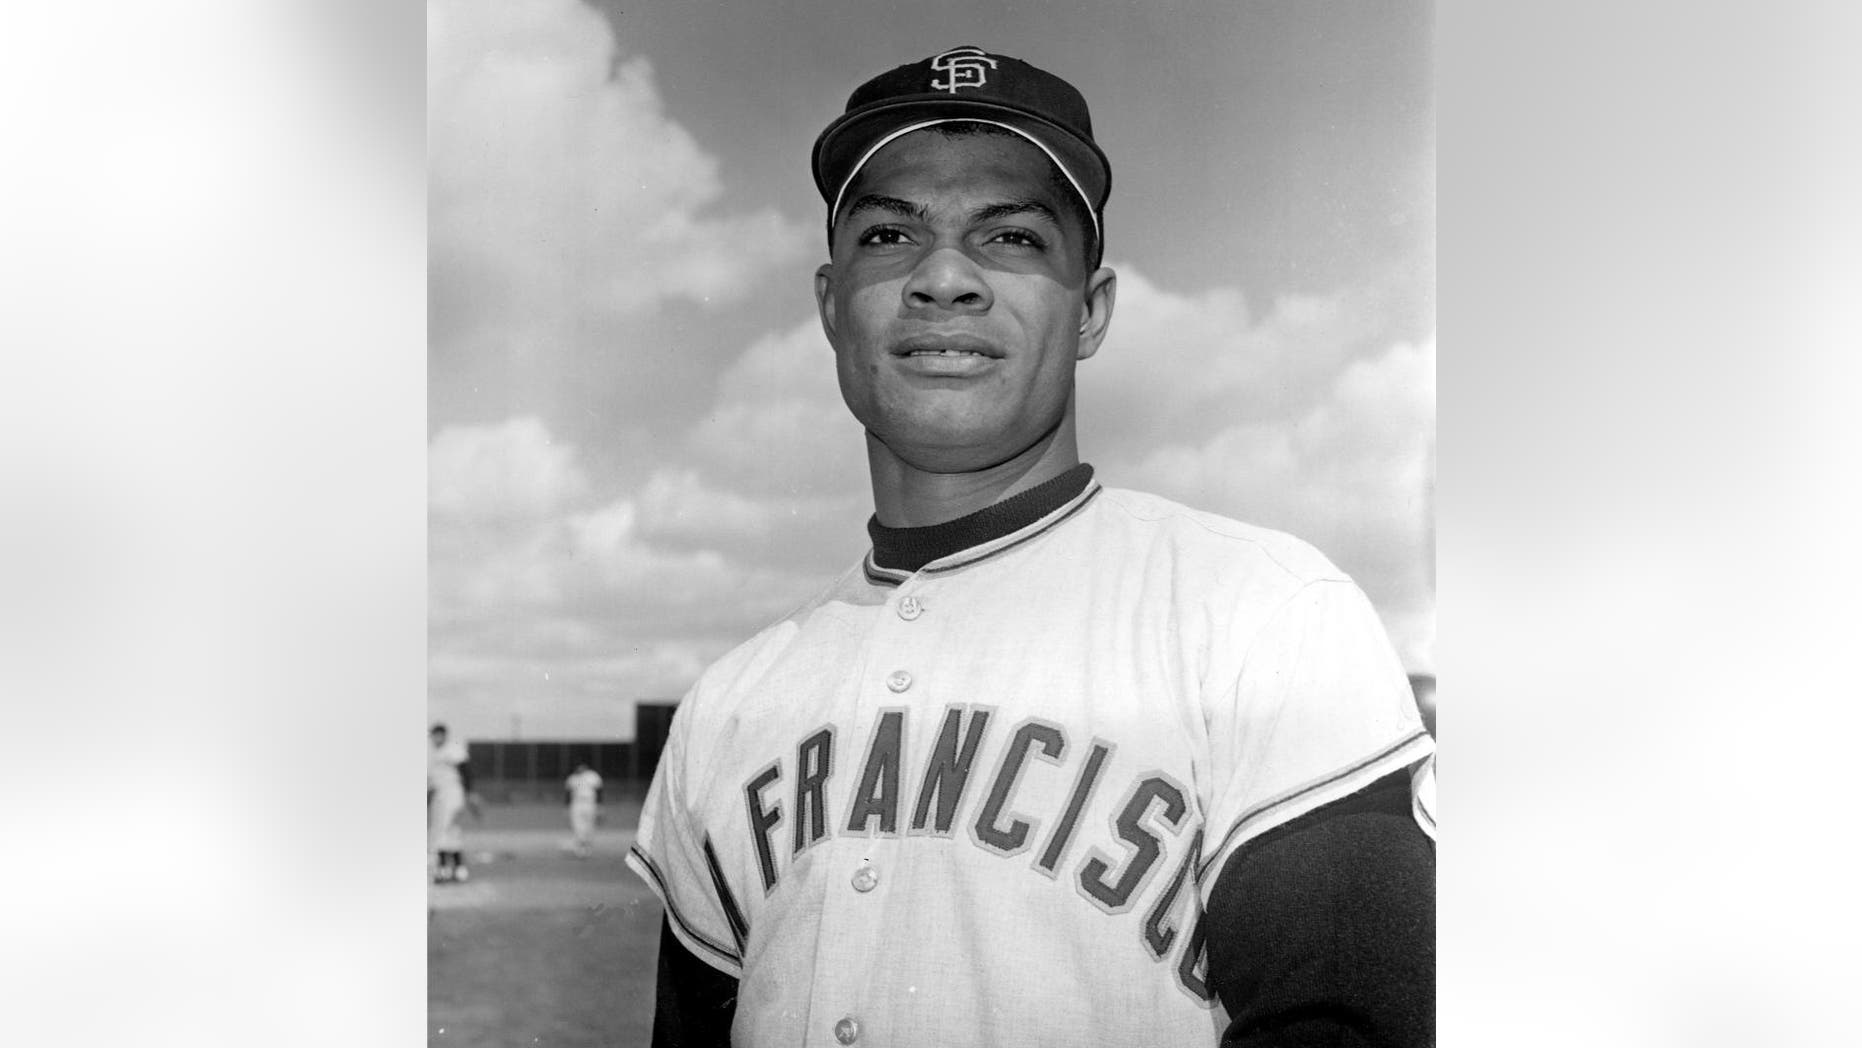 In this March 8, 1962 file photo Felipe Alou, outfielder for the San Francisco Giants, poses in Casa Grande, Ariz. Alou and Orlando Cepeda were dark-skinned Latinos who knew little English when they arrived in the minor leagues as teenagers, among the first wave of Spanish-speaking players thrown into a new culture to play professional baseball. Both are encouraged to see so many young players from Latin America now arriving in the U.S. with better English skills, thanks in large part to all 30 major league organizations putting more emphasis into such training through academies in the Dominican Republic and Venezuela. (AP Photo/File)